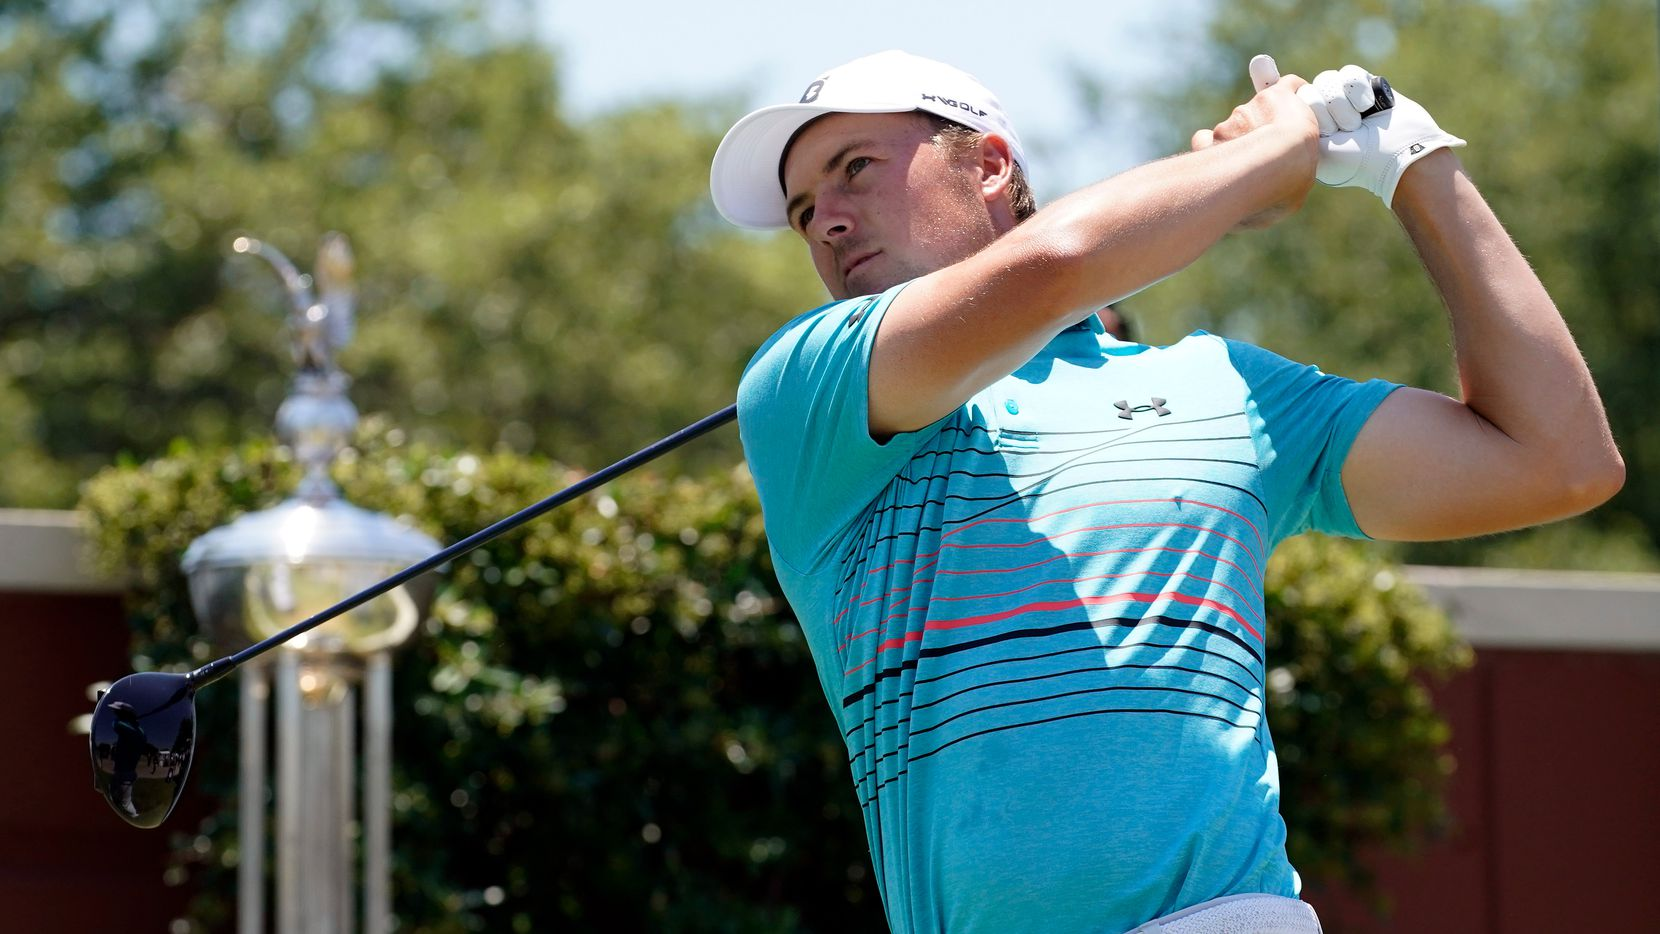 PGA Tour golfer Jordan Spieth tees off to start the third round of the Charles Schwab Challenge at the Colonial Country Club in Fort Worth, Saturday, June 13, 2020.  The Challenge was the first tour event since the COVID-19 pandemic began.